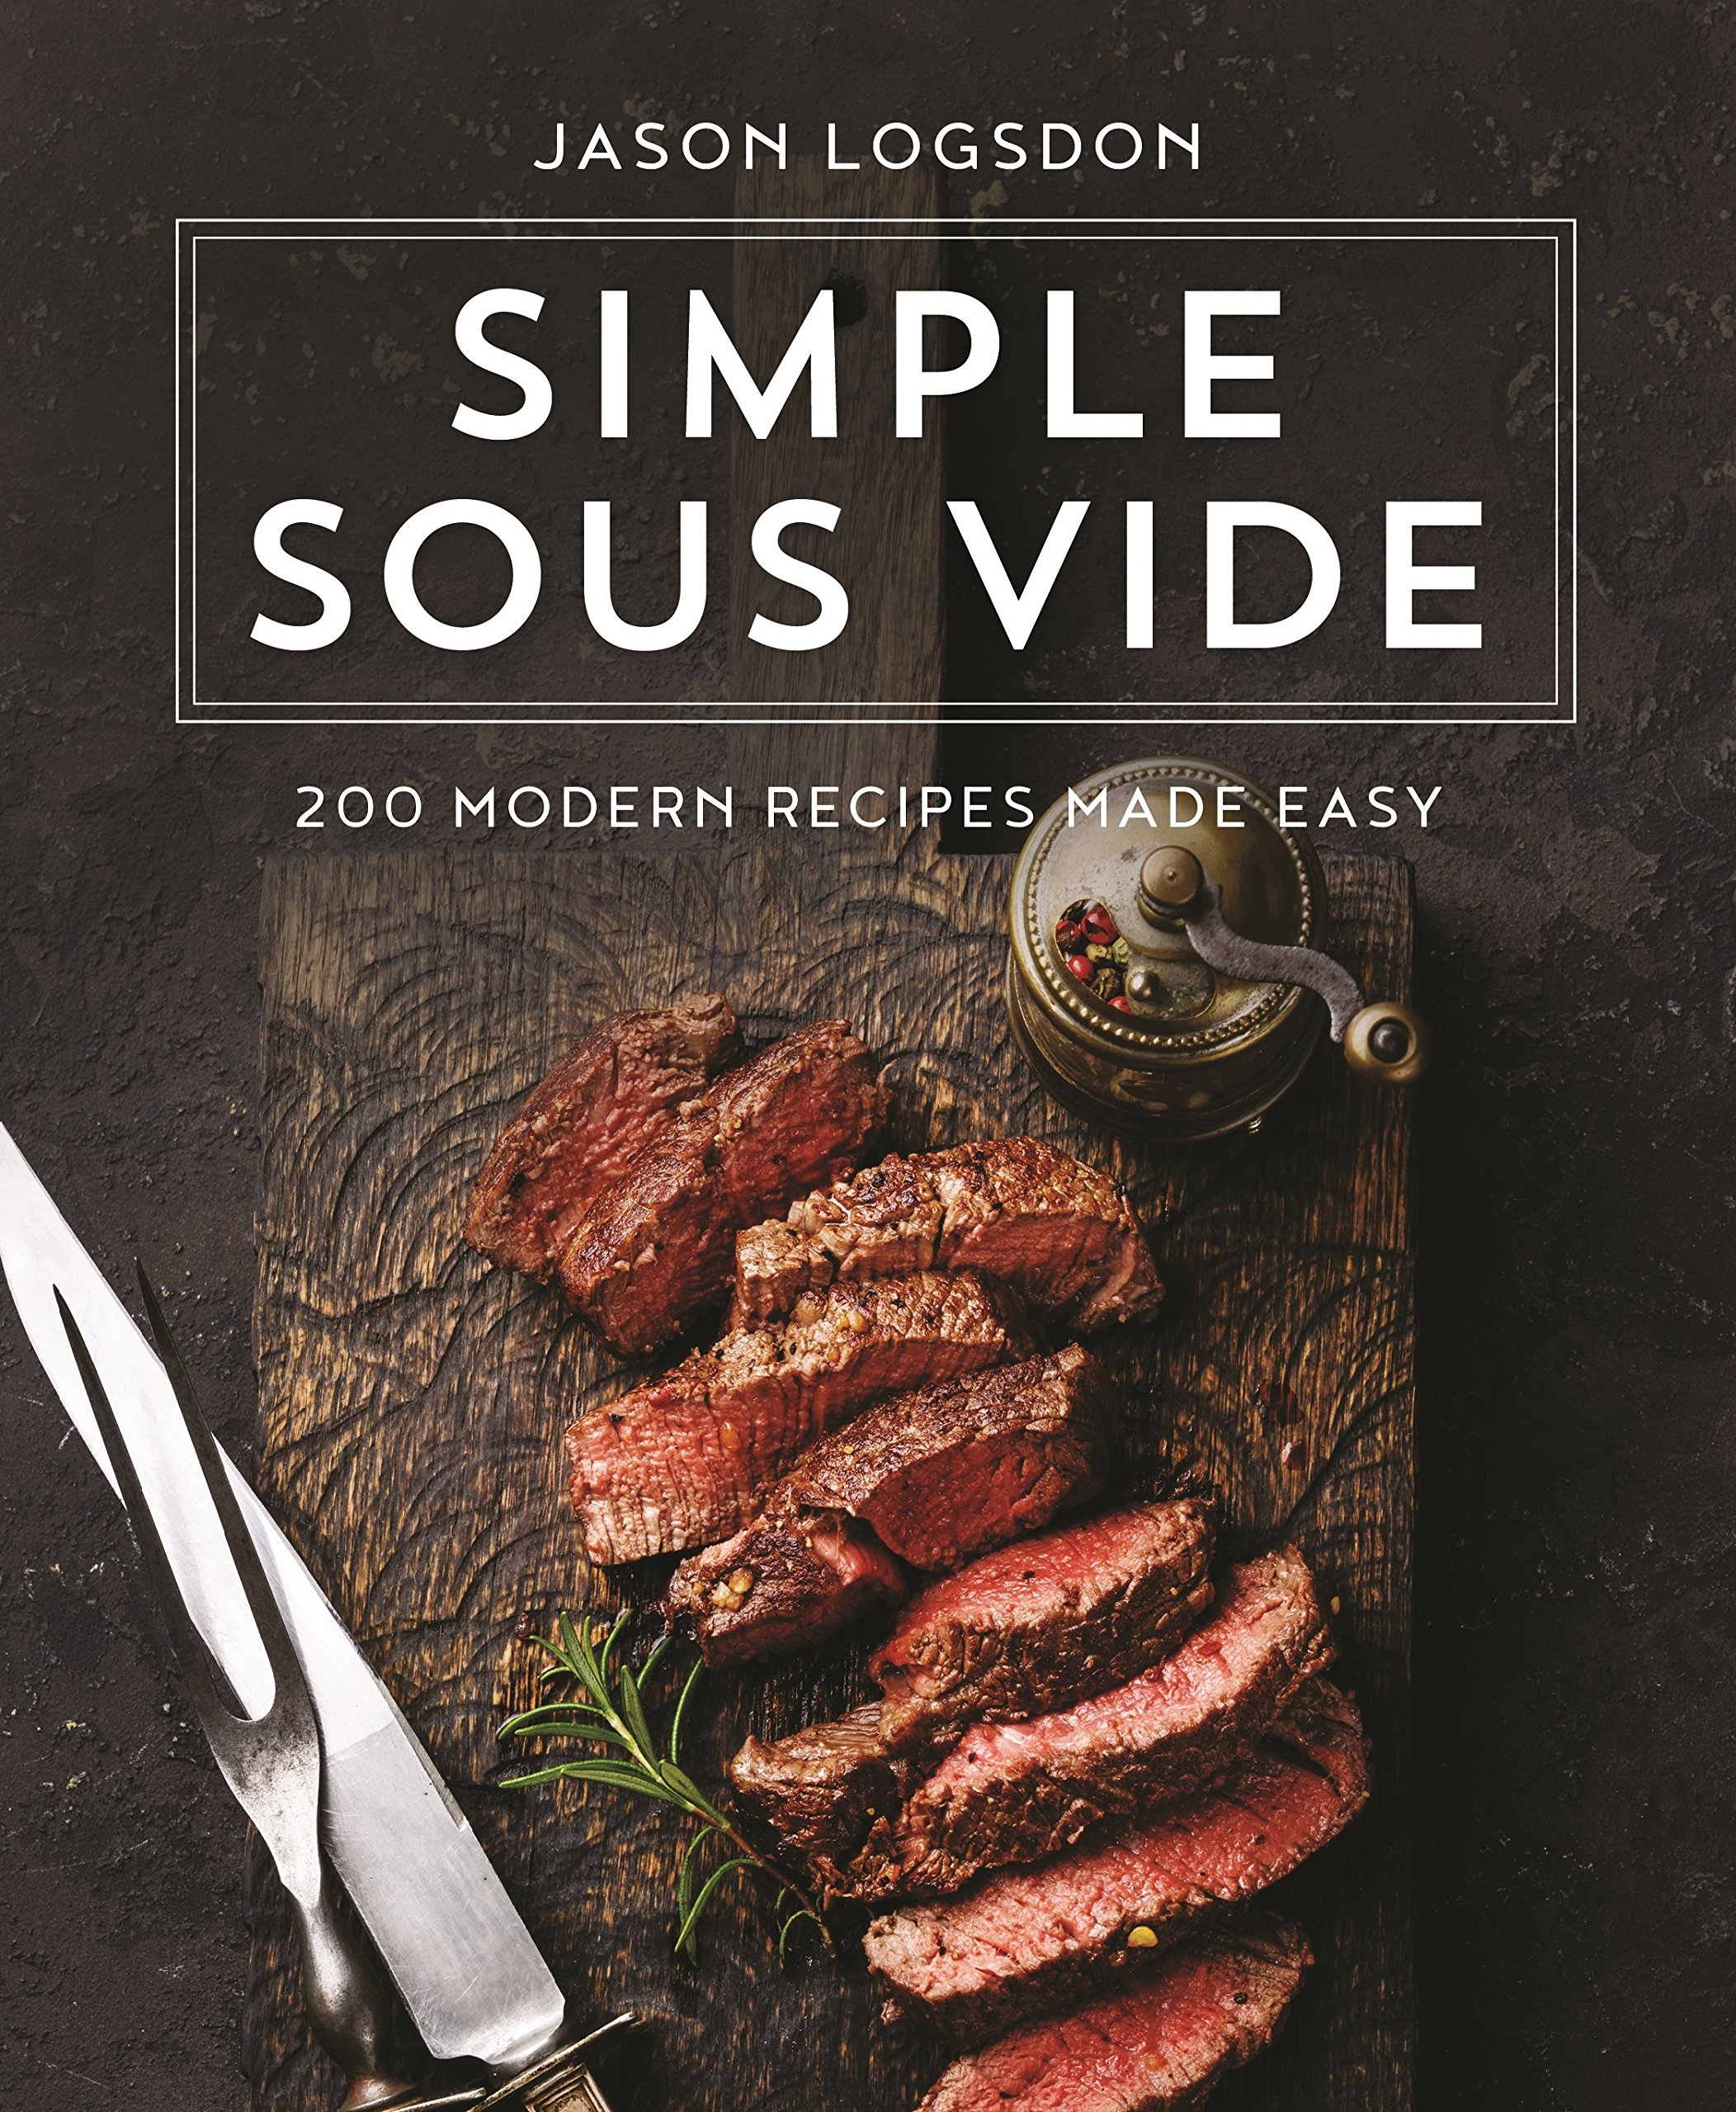 Simple Sous Vide: 200 Modern Recipes Made Easy: Amazon.es: Logsdon Jason, Logsdon Jason: Libros en idiomas extranjeros